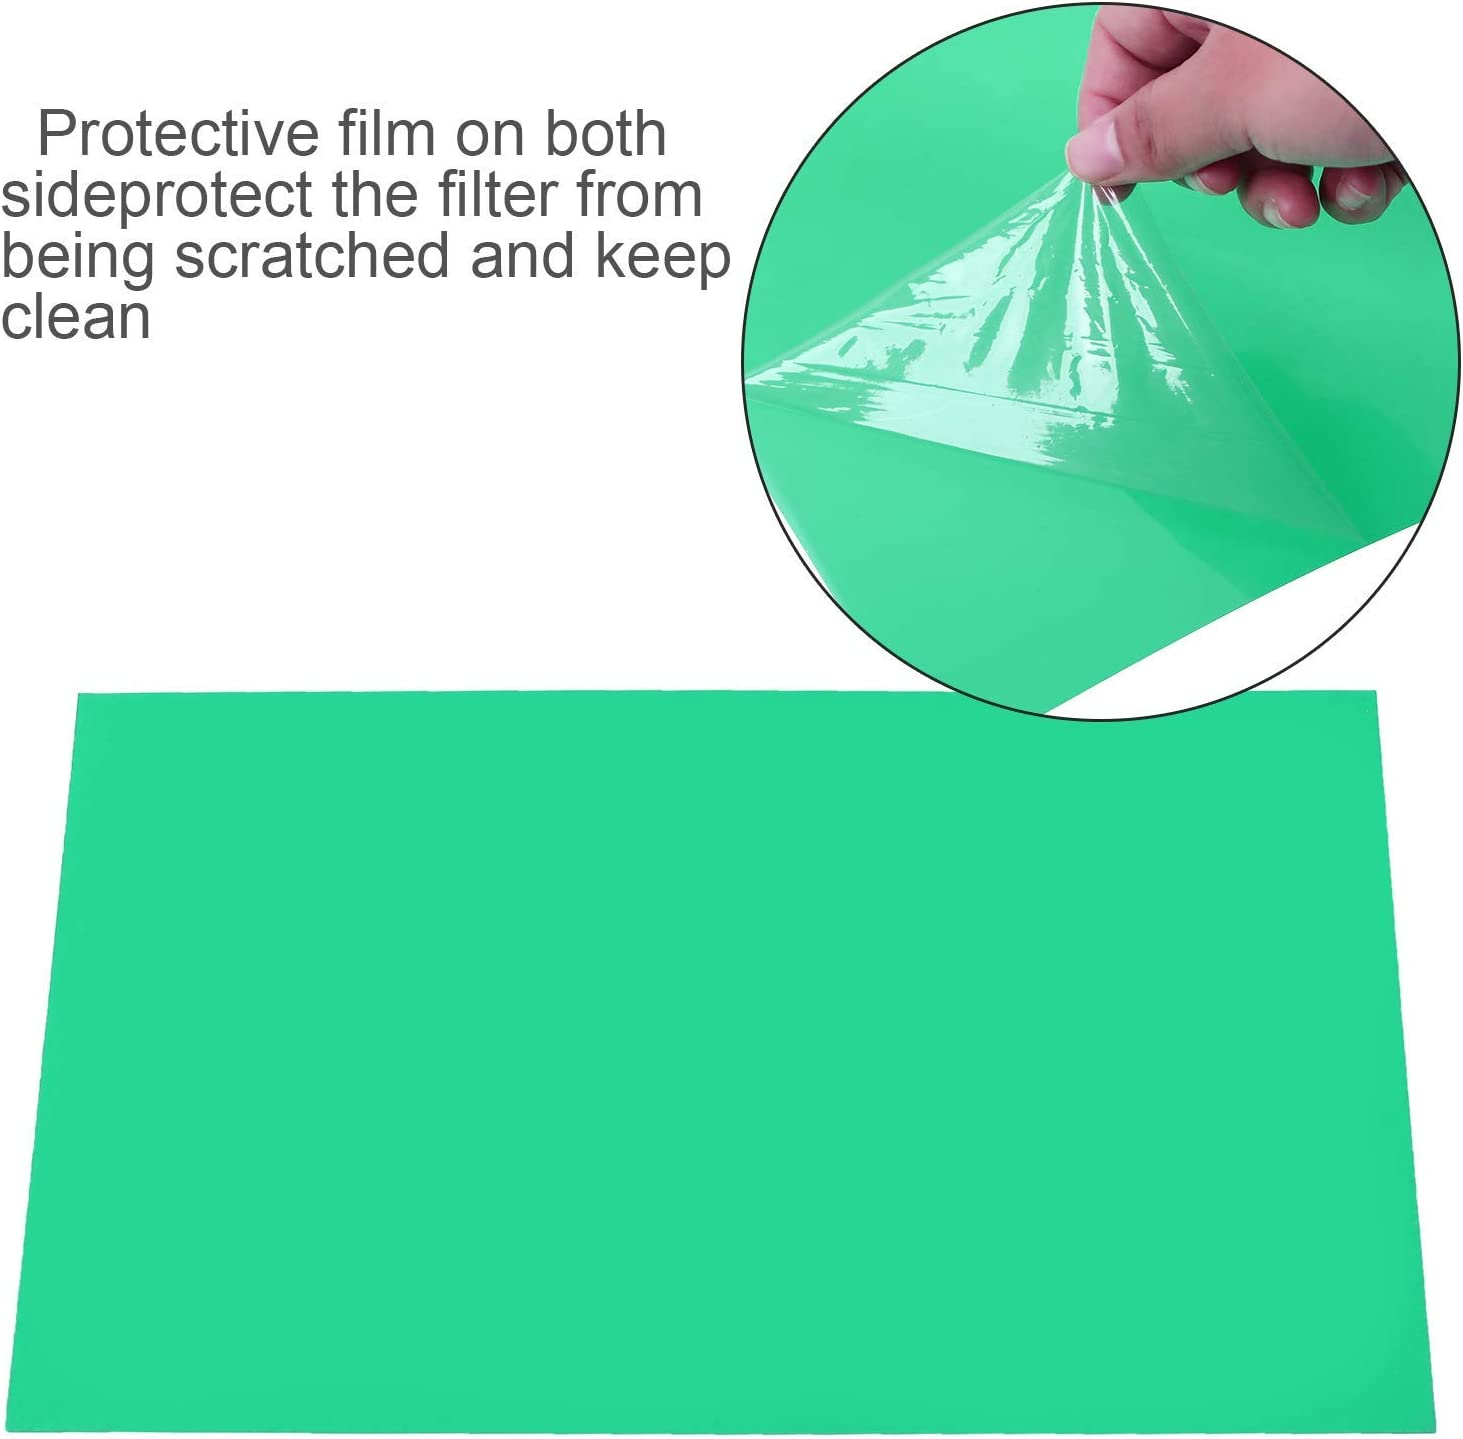 Blue 10 Pack Gel Filter Transparency Color Film Plastic Sheets Colored Overlays Correction Gels Light Filter Flash Lighting Holiday Decorations,11.7 by 8.3 Inches